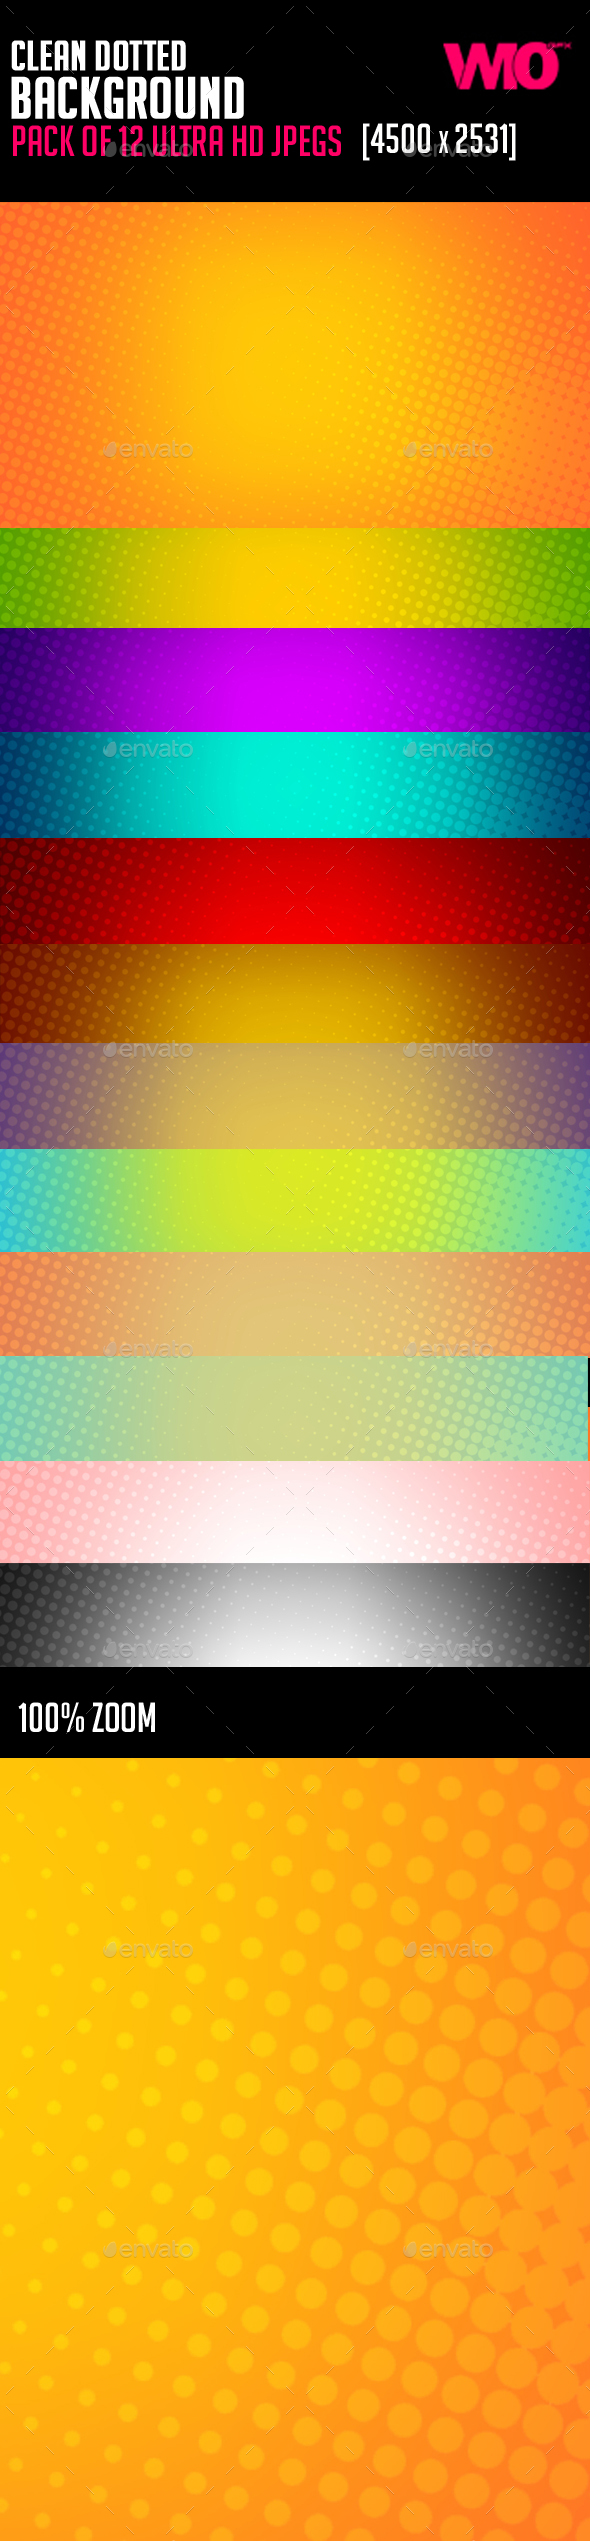 Clean Dotted Background - Backgrounds Graphics